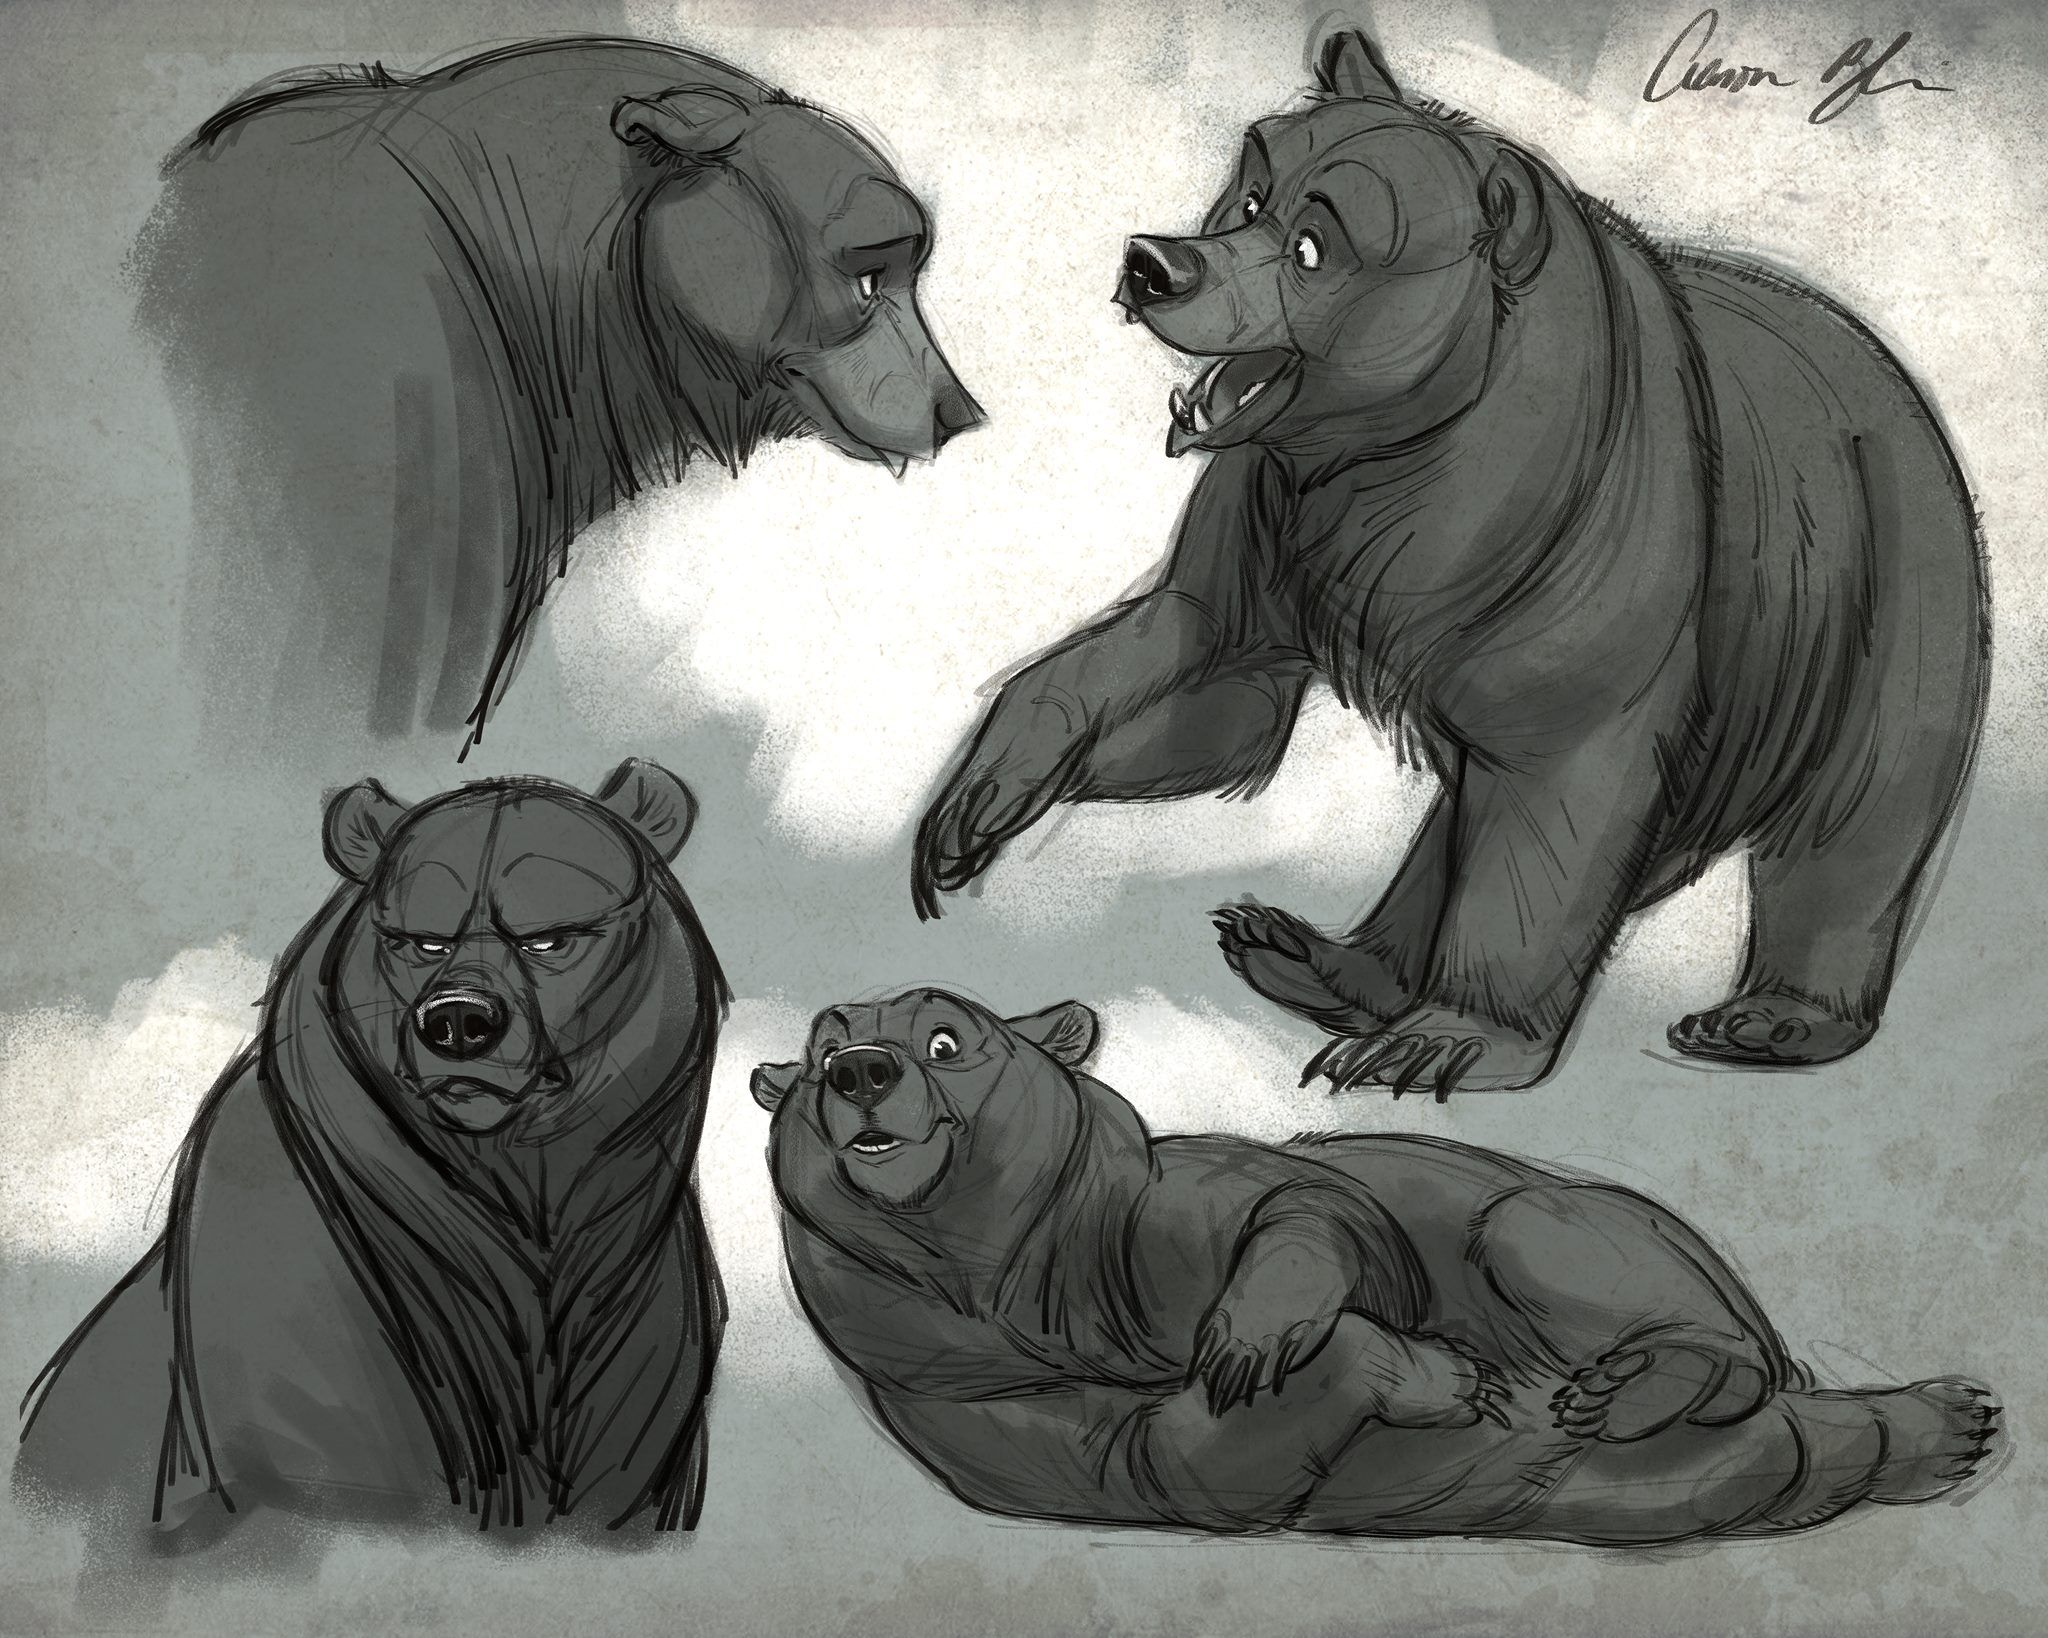 Pin de Alice levy en Brother bear | Pinterest | Anatomía animal ...